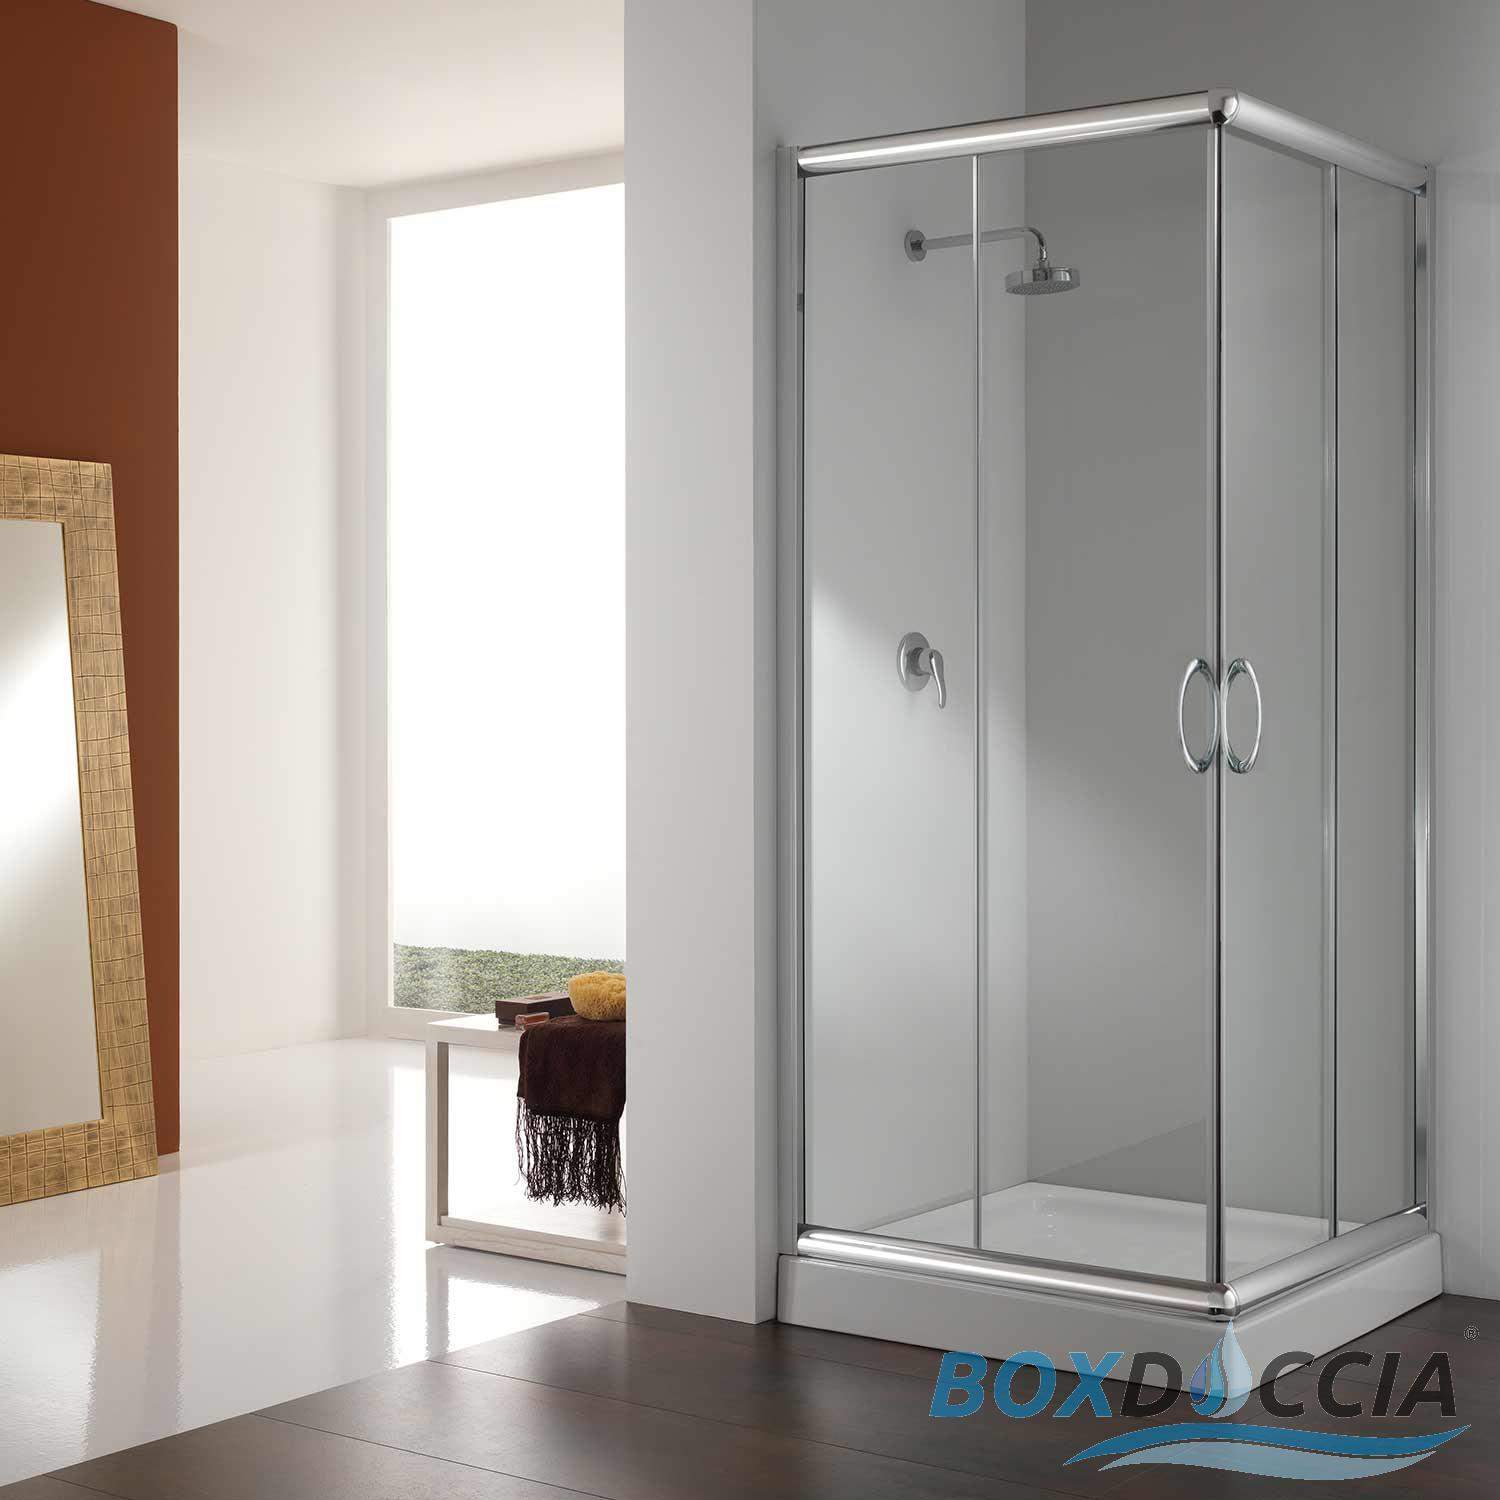 shower enclosure corner entry cubicle glass sliding screen door bathroom chrome ebay. Black Bedroom Furniture Sets. Home Design Ideas